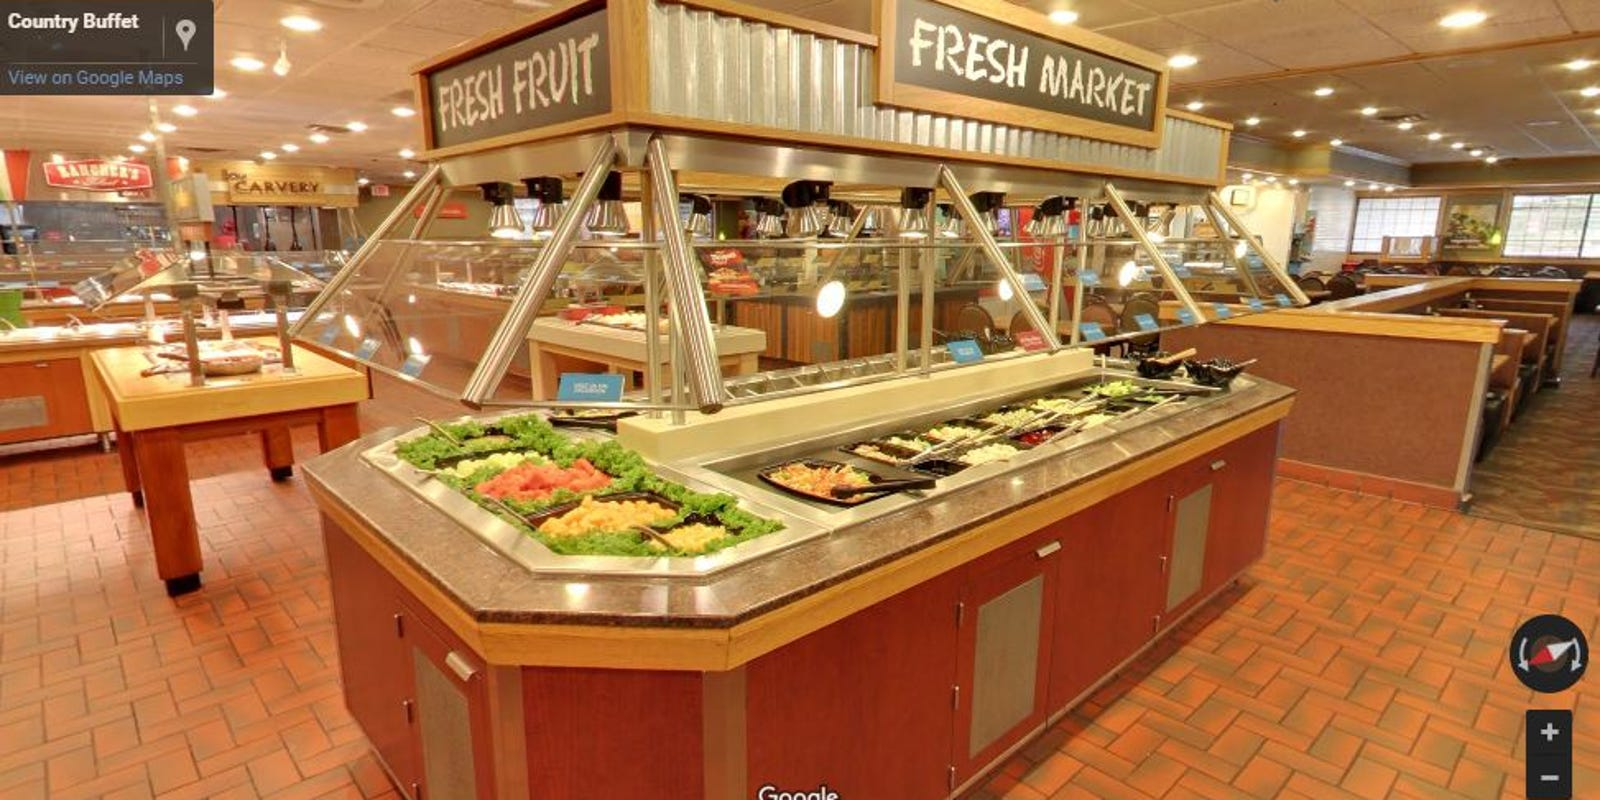 Old Country Buffet offers amazing value on American all-you-can-eat dining. Click over to their website where you can search for a location near you and peruse their expansive menu featuring family-style casseroles, classic comfort food, regional seafood dishes, .